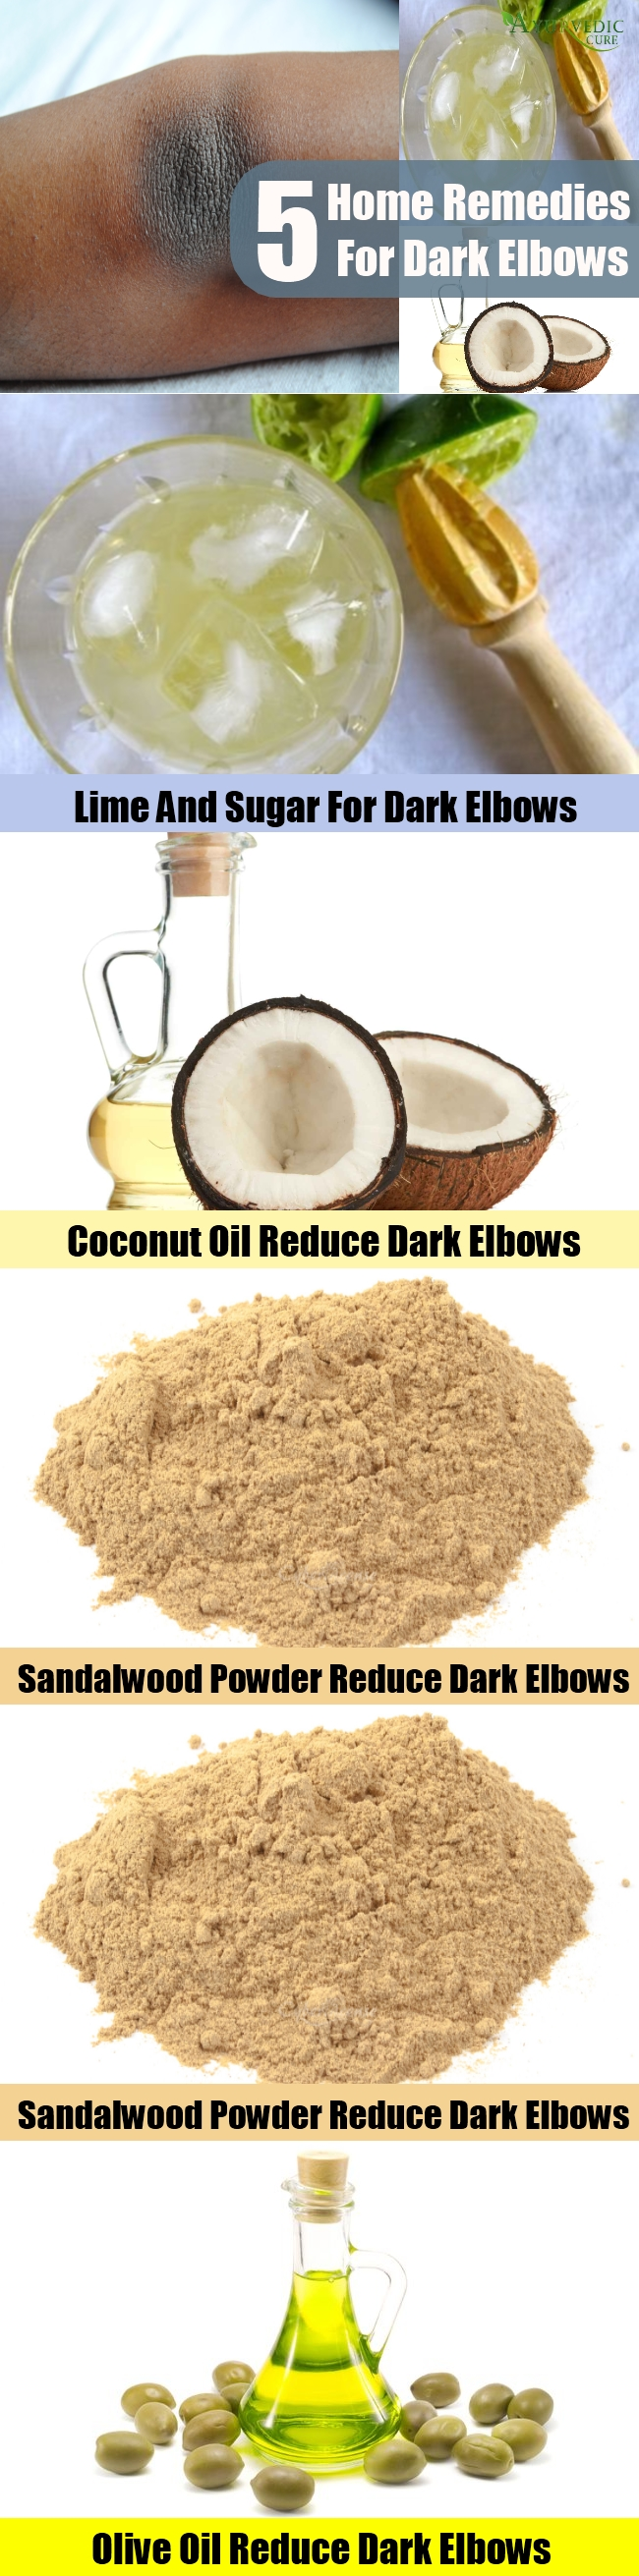 5 Amazing Home Remedies For Dark Elbows